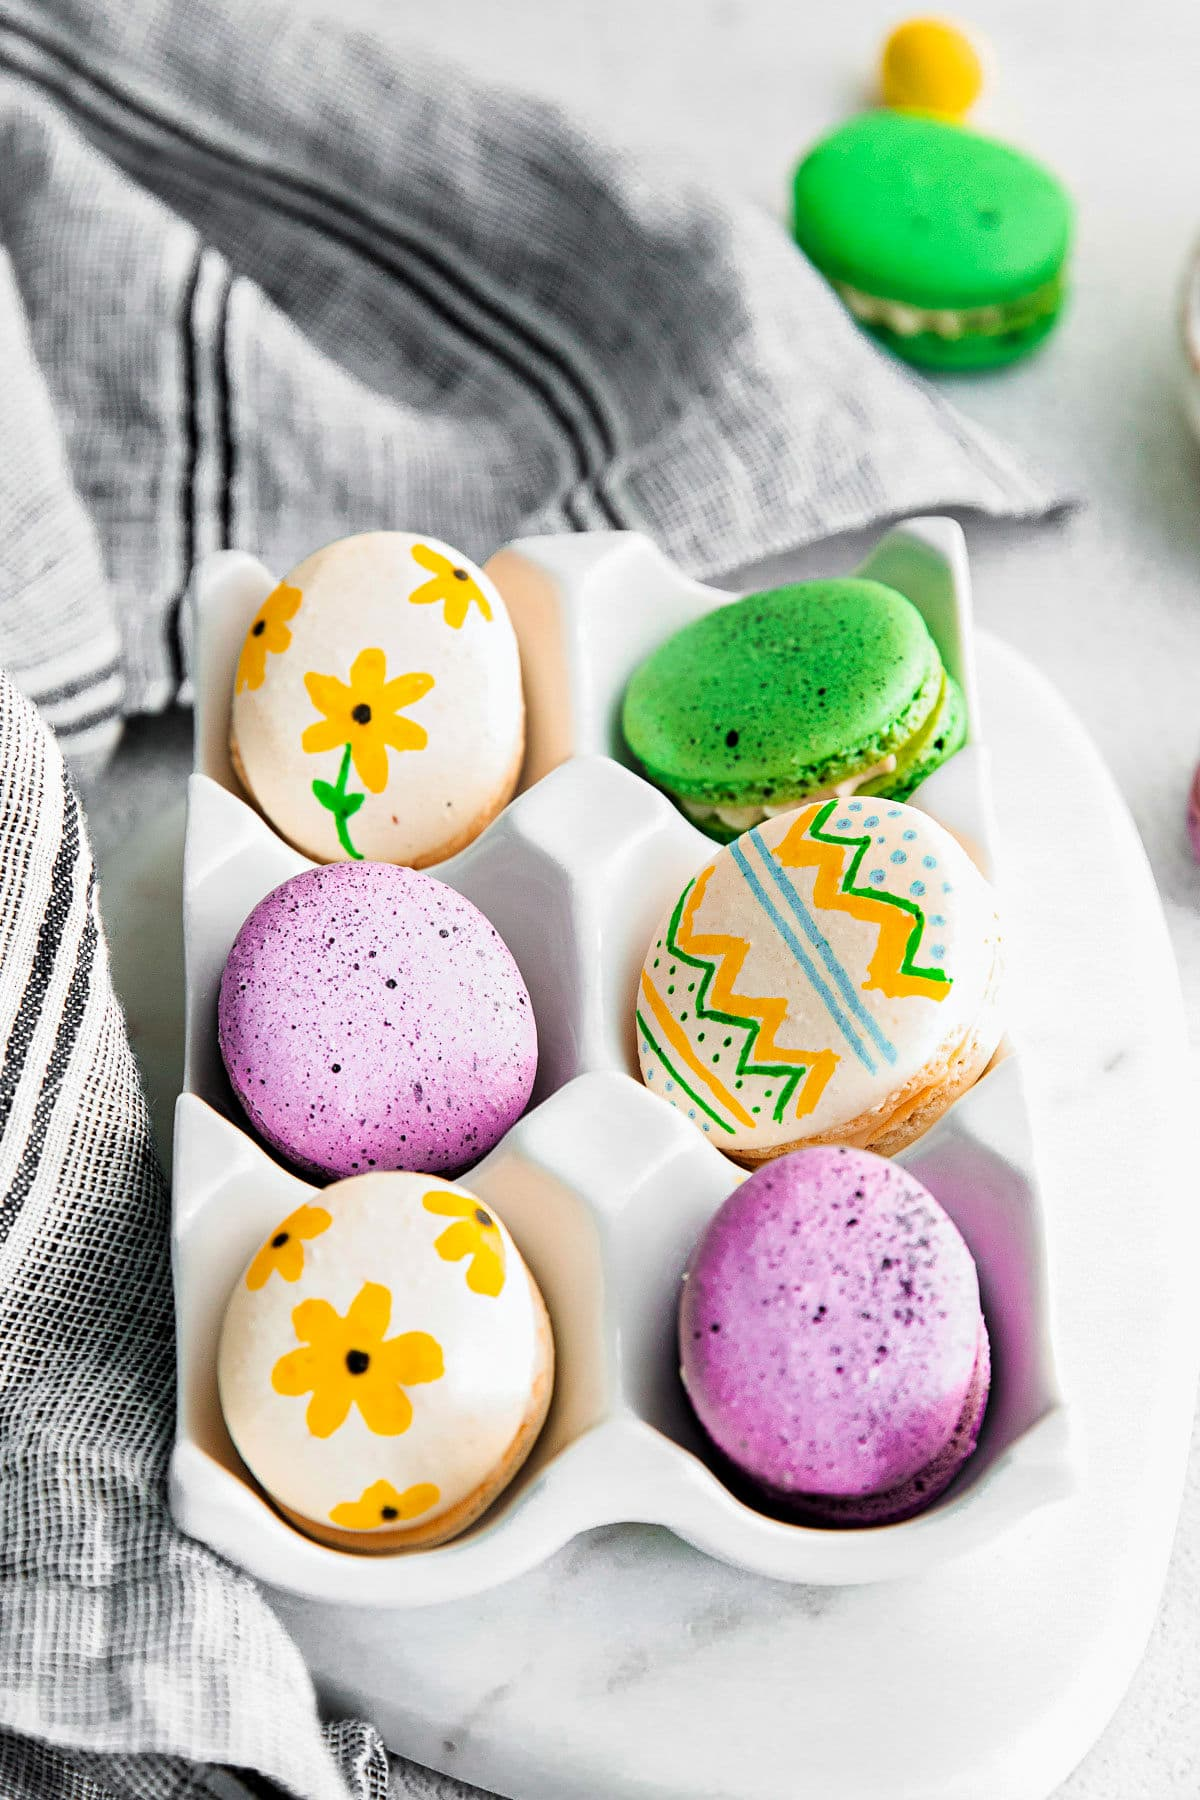 6 macarons decorated like eater eggs in white ceramic egg crate.